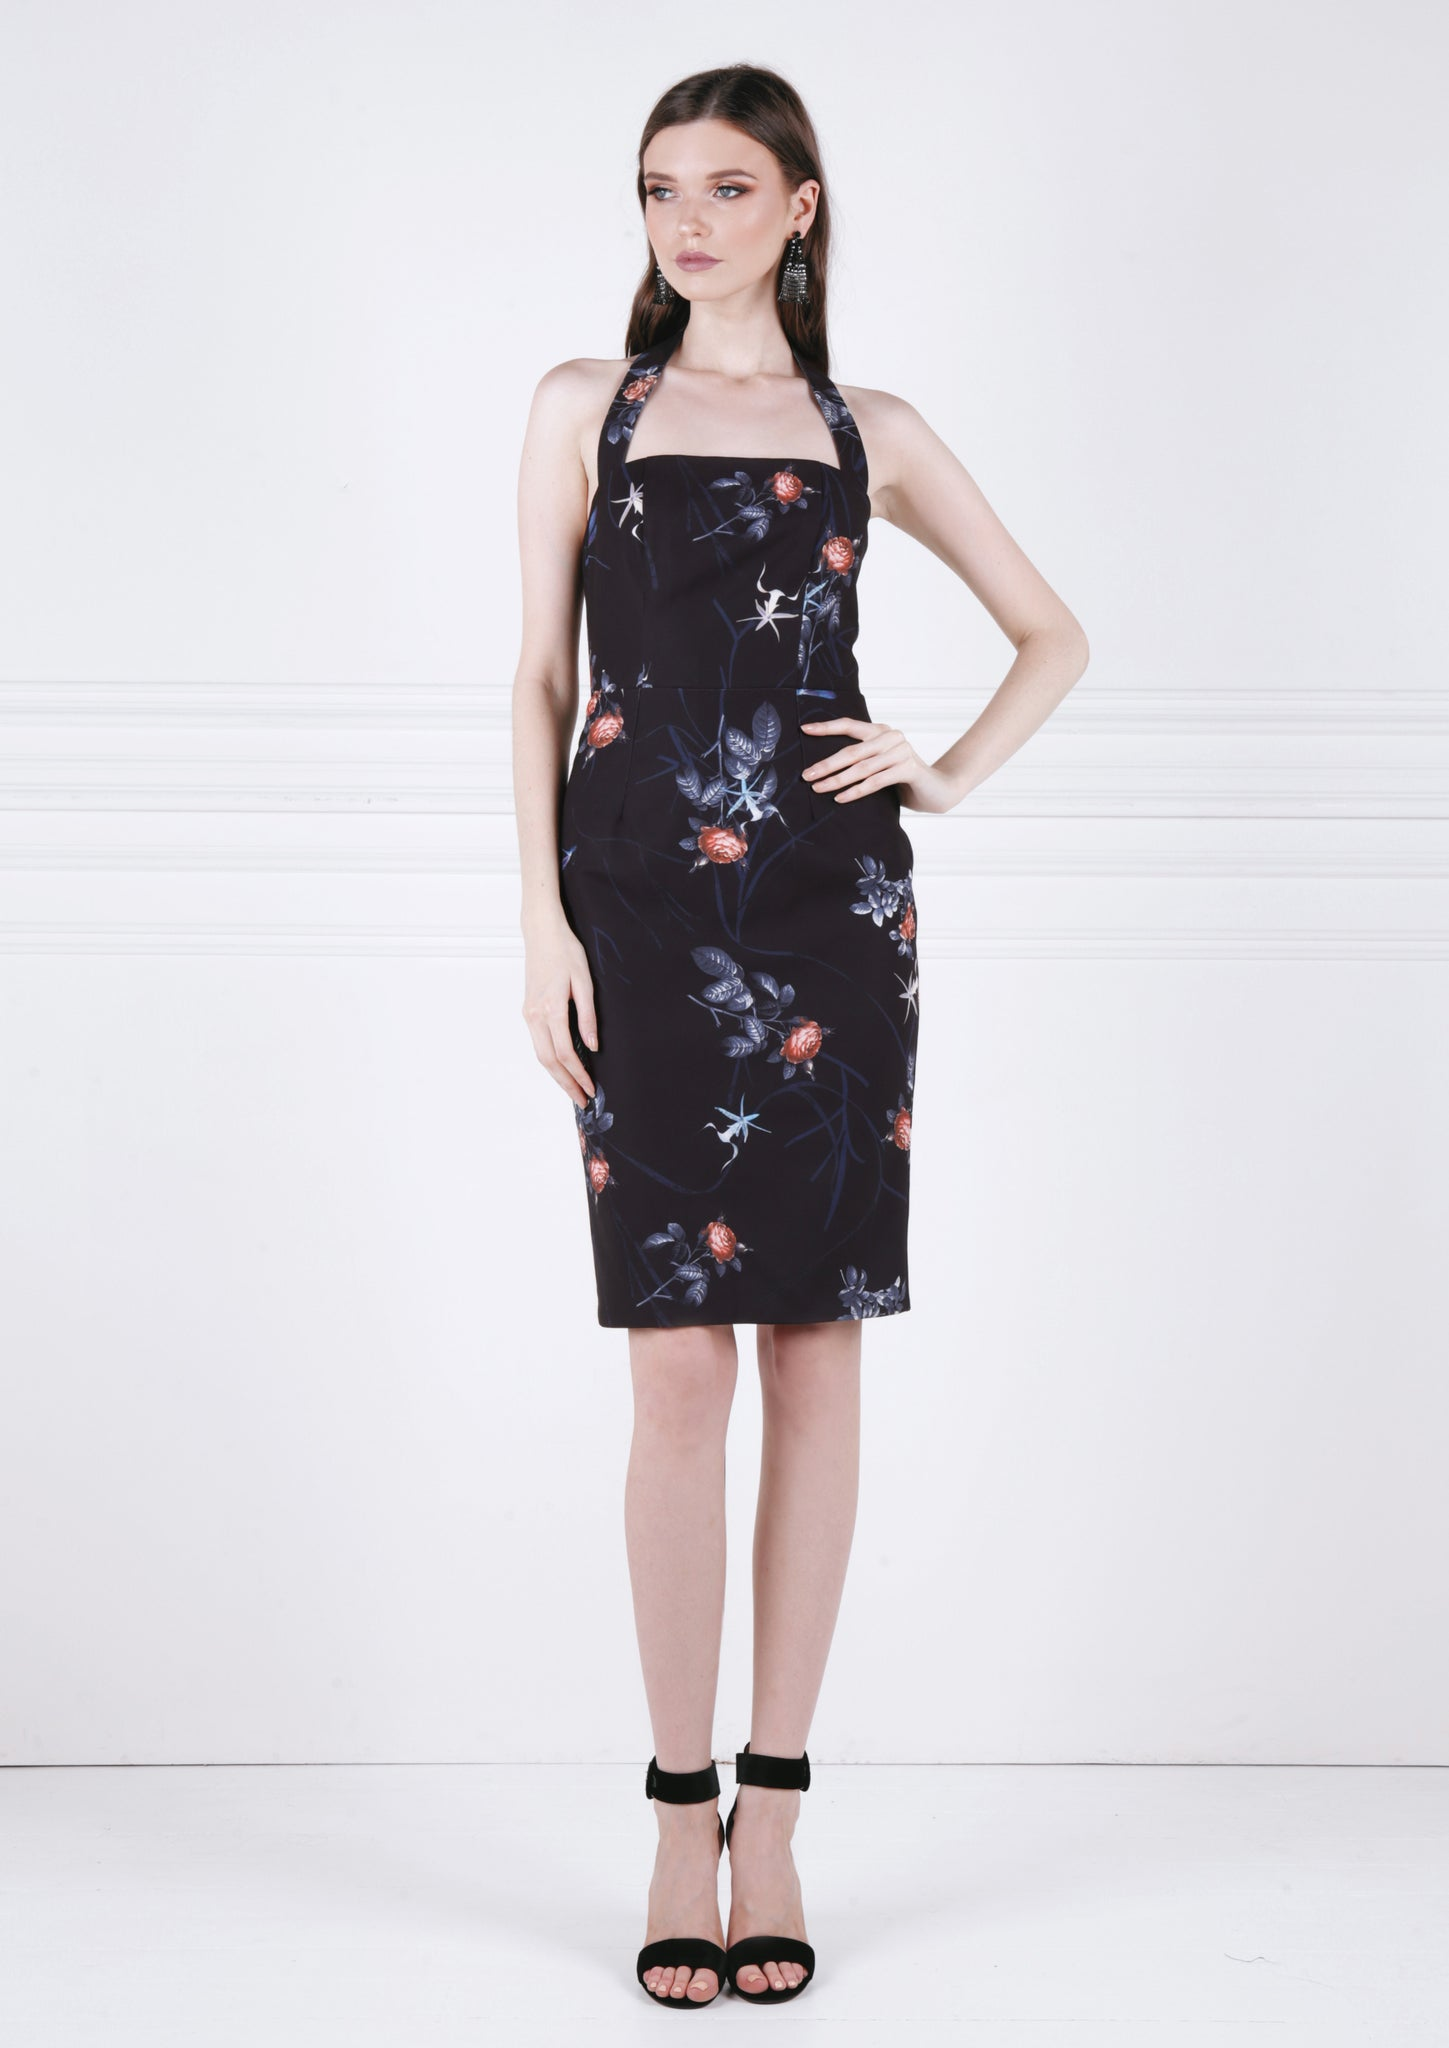 Arthropoda Midi Dress (Floral) - Moxie